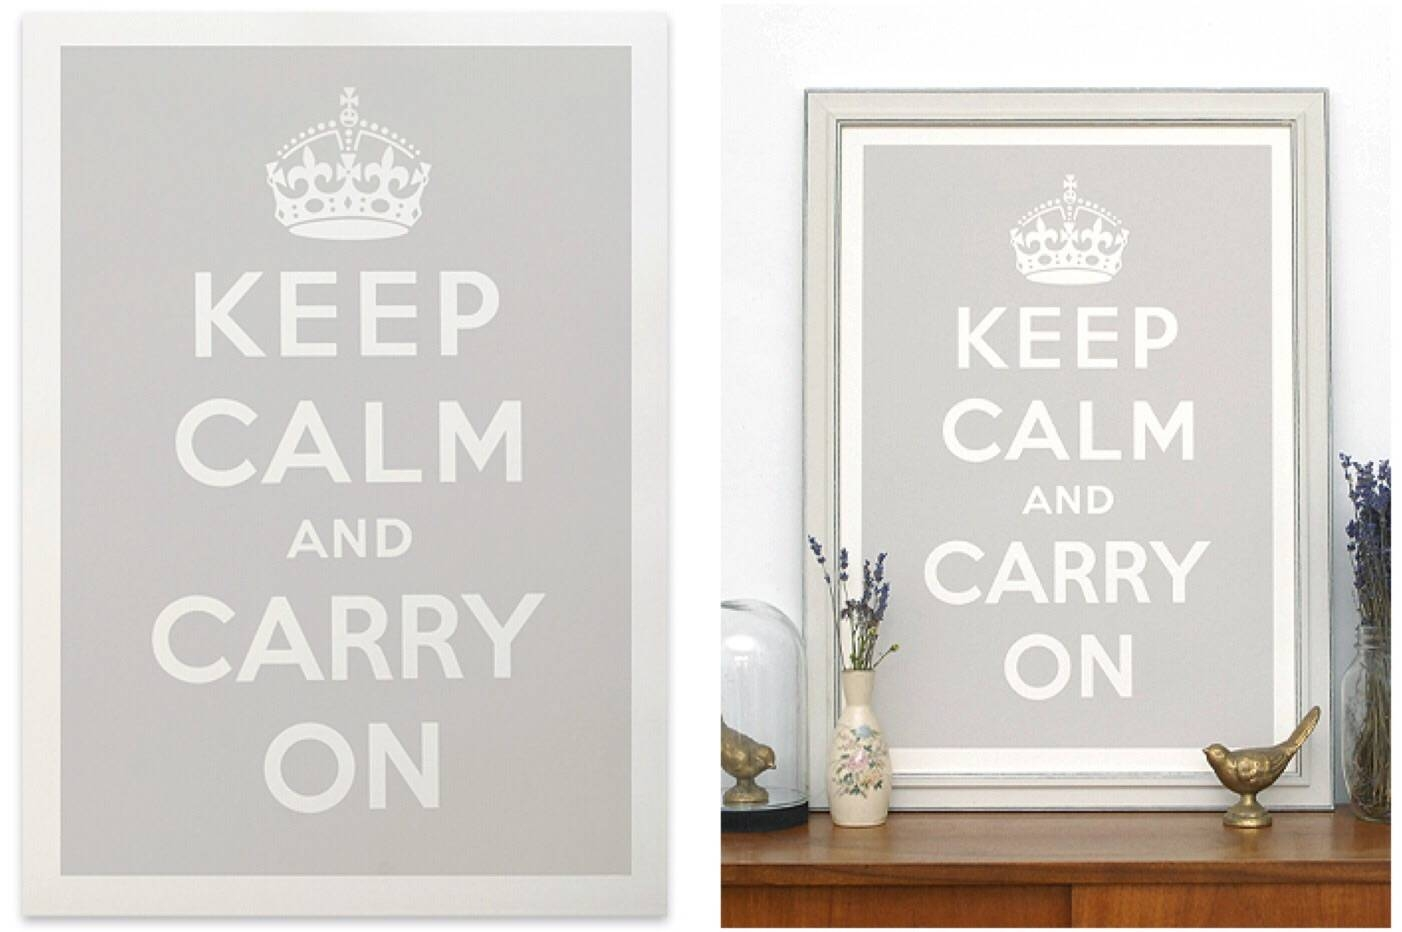 Keep Calm Wall Art Print Inside Newest Keep Calm And Carry On Wall Art (View 19 of 25)